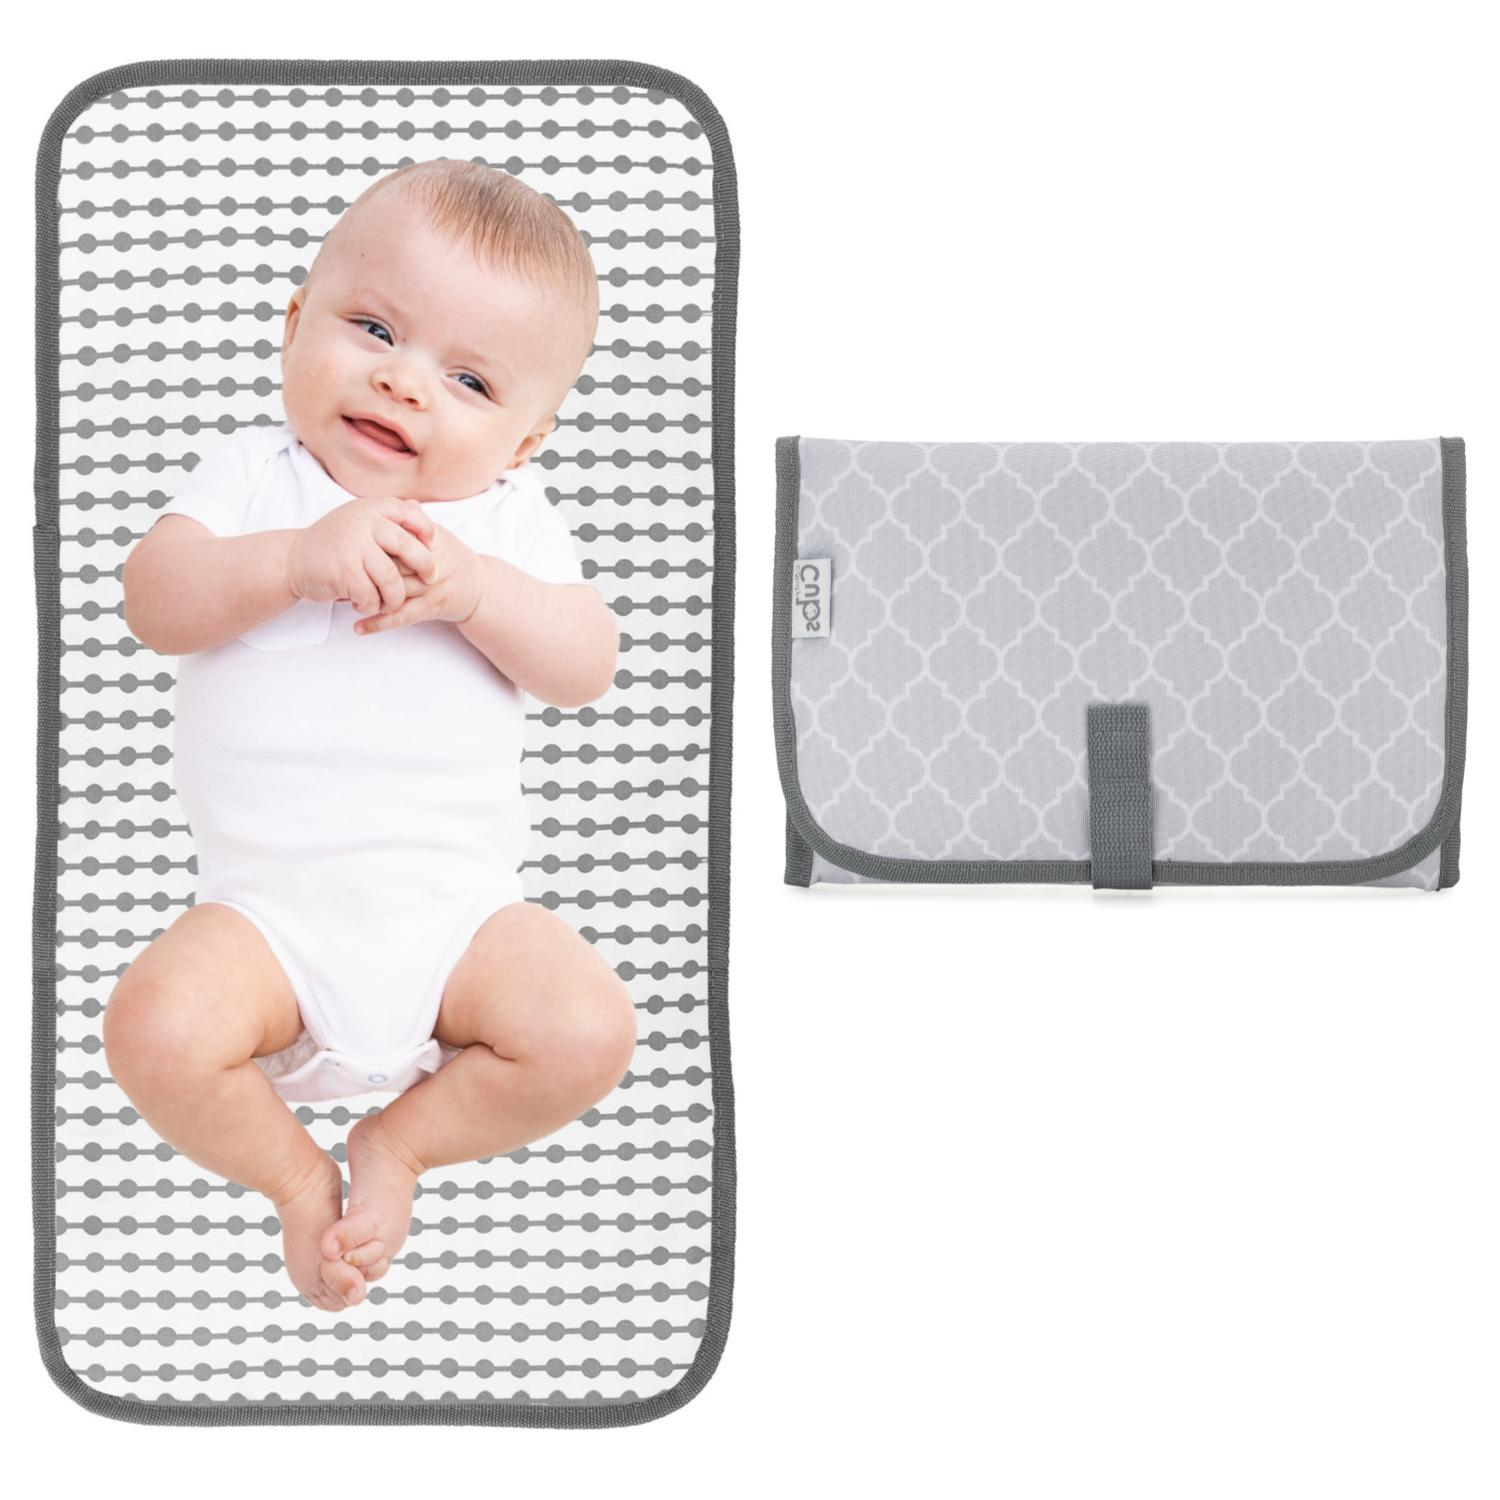 baby portable changing pad travel mat station